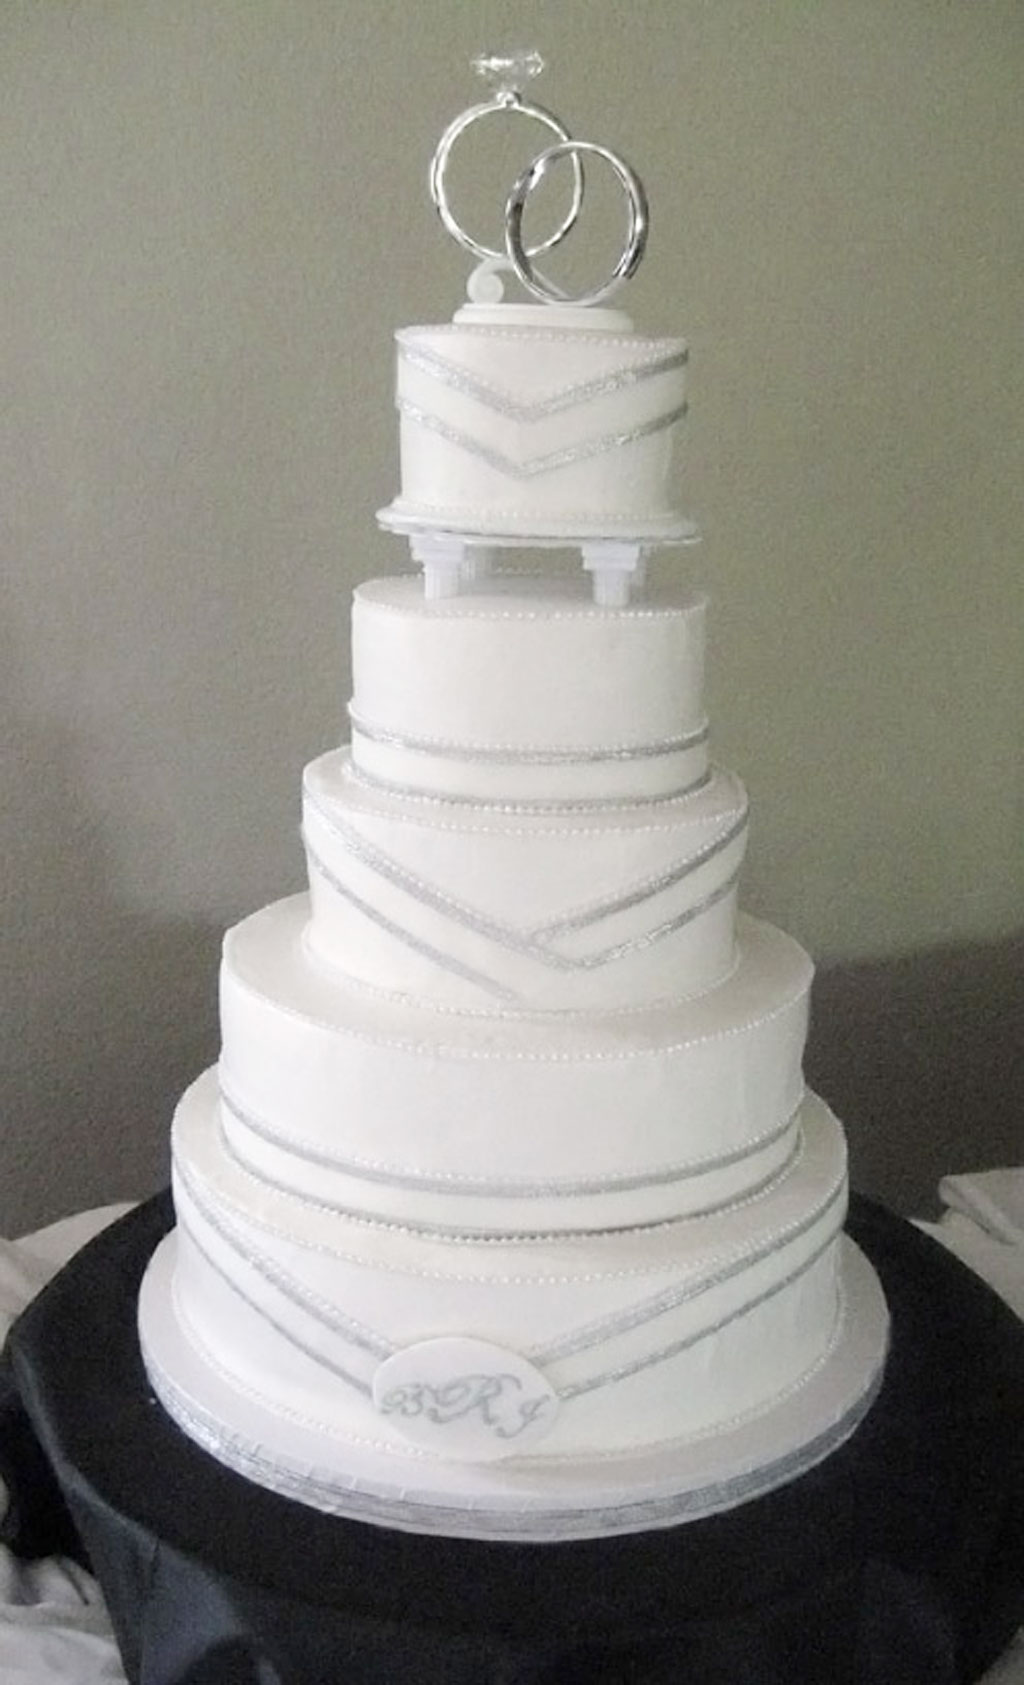 Simple Wedding Cakes Related Keywords & Suggestions